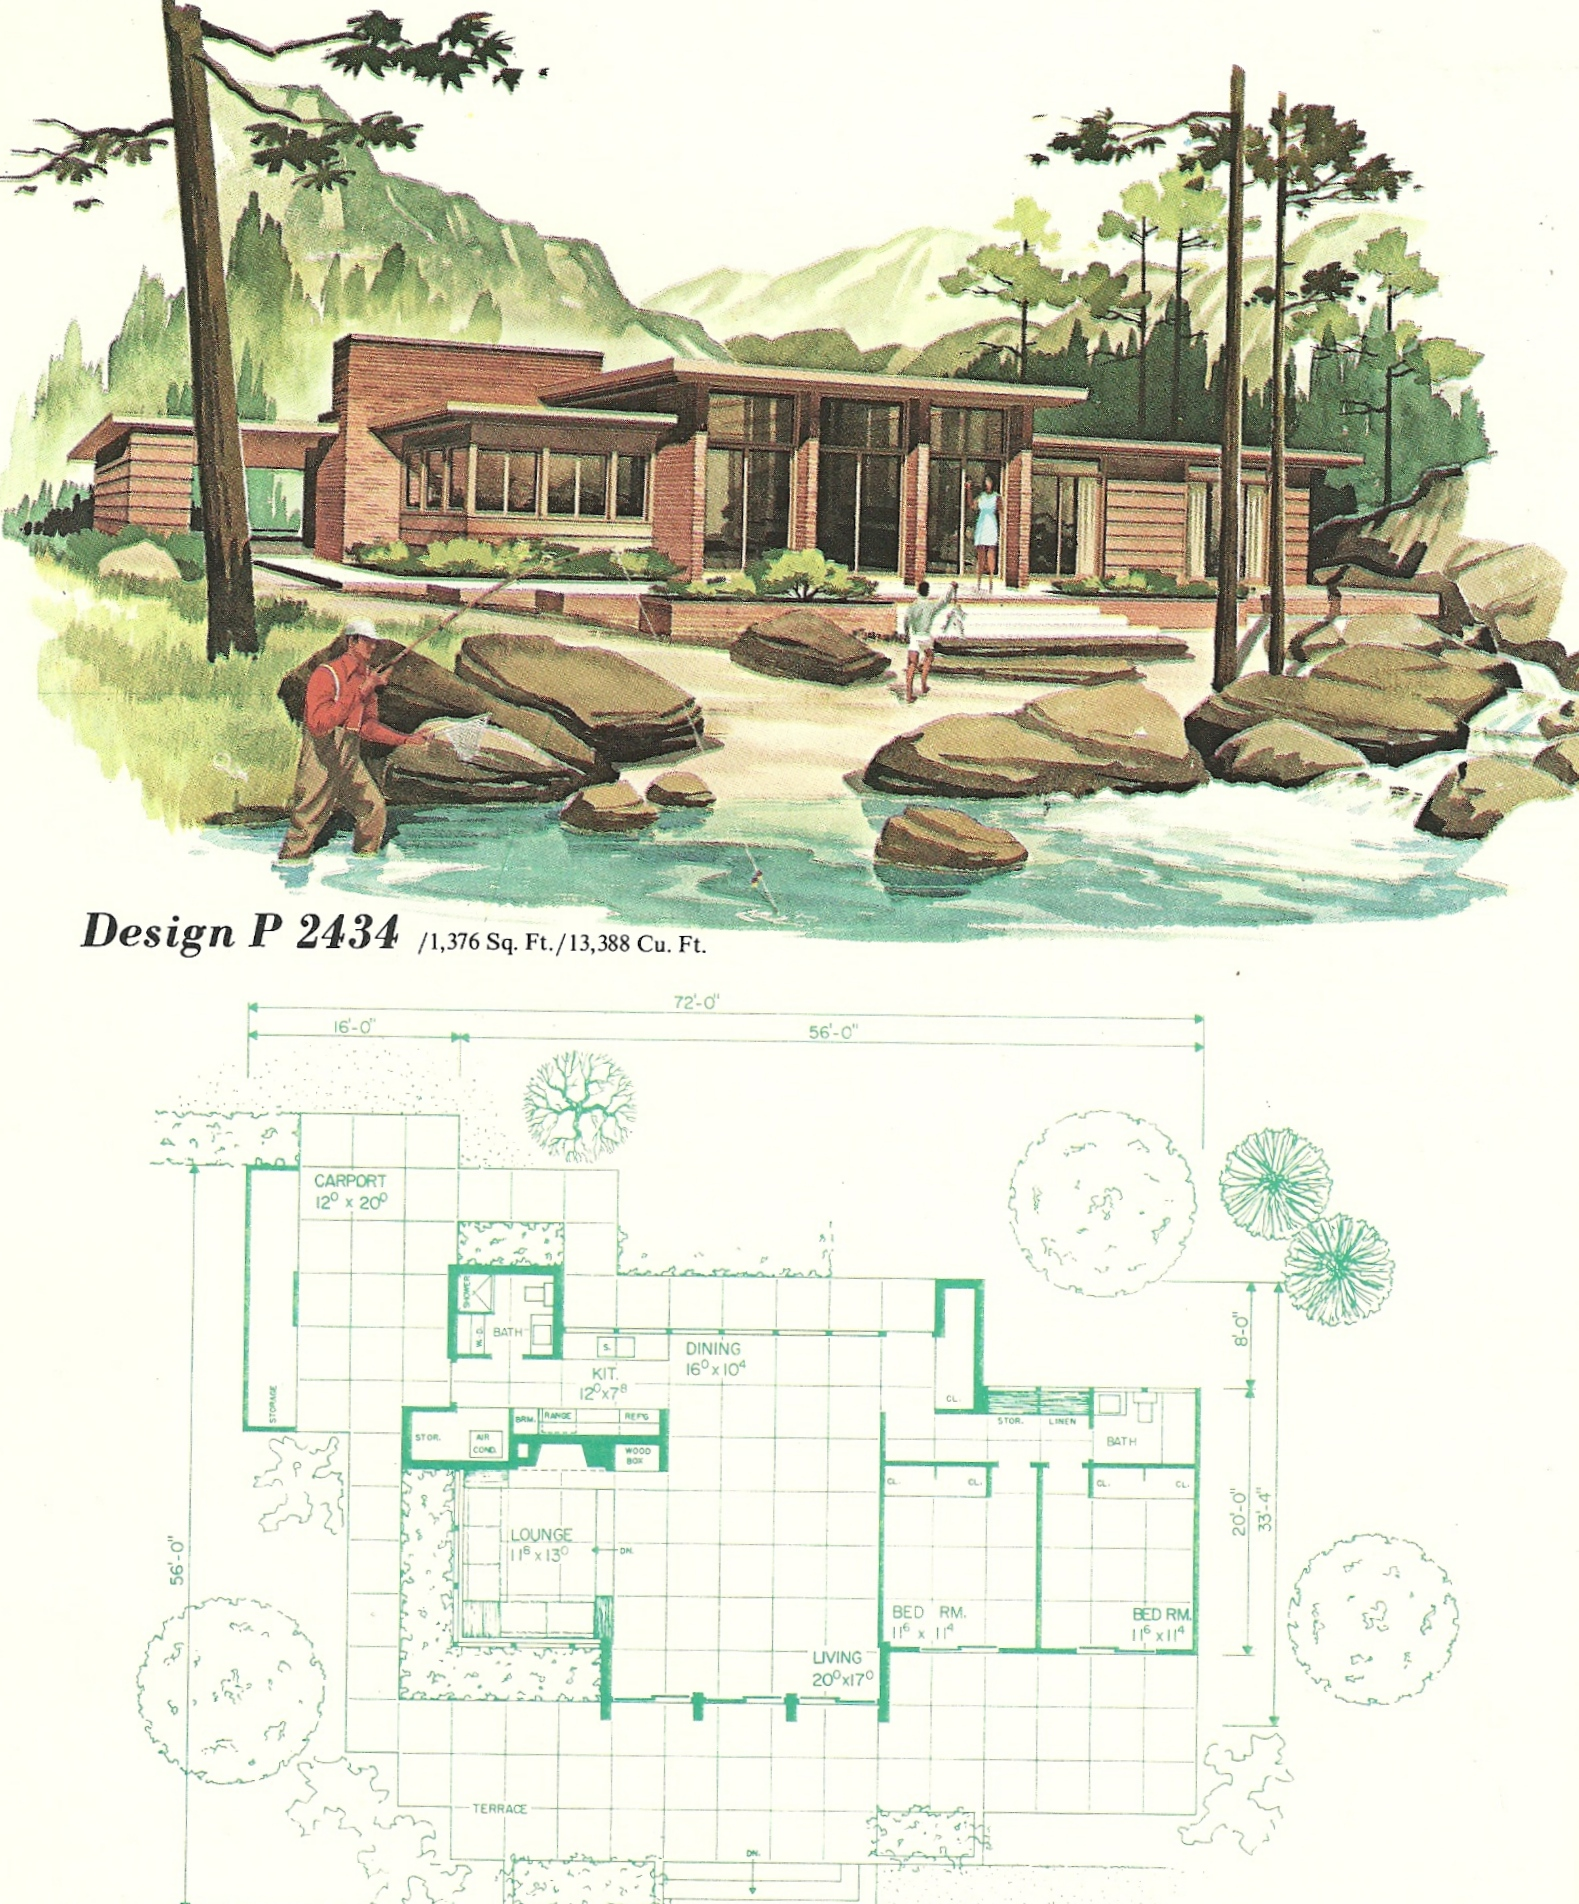 Vintage house plans 2434 antique alter ego for 1960 s home plans